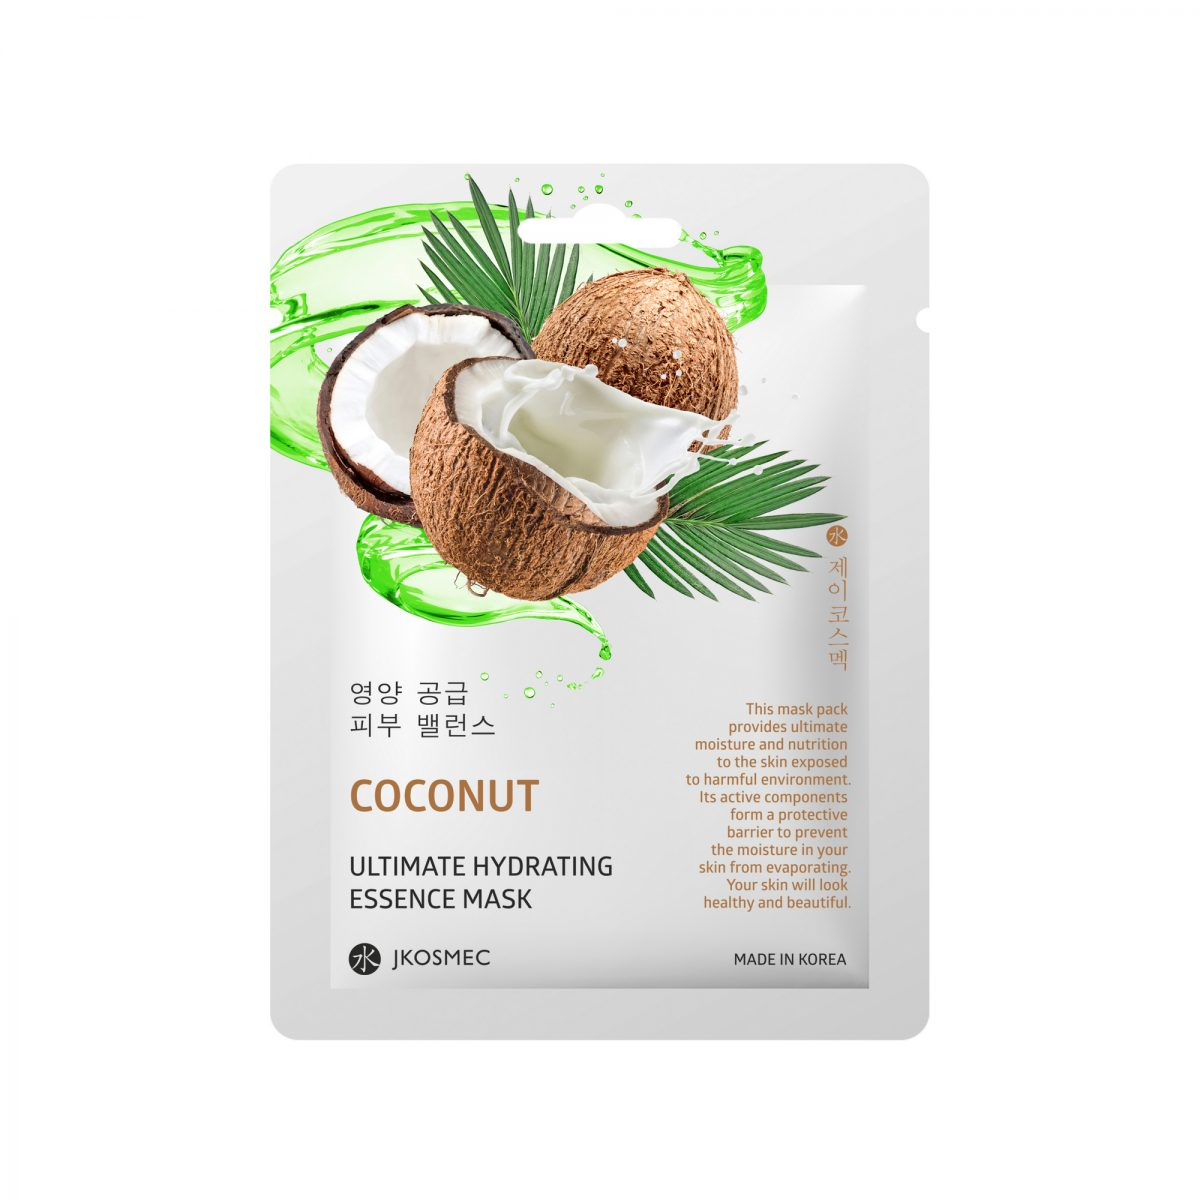 JKOSMEC COCONUT ULTIMATE HYDRATING ESSENCE MASK